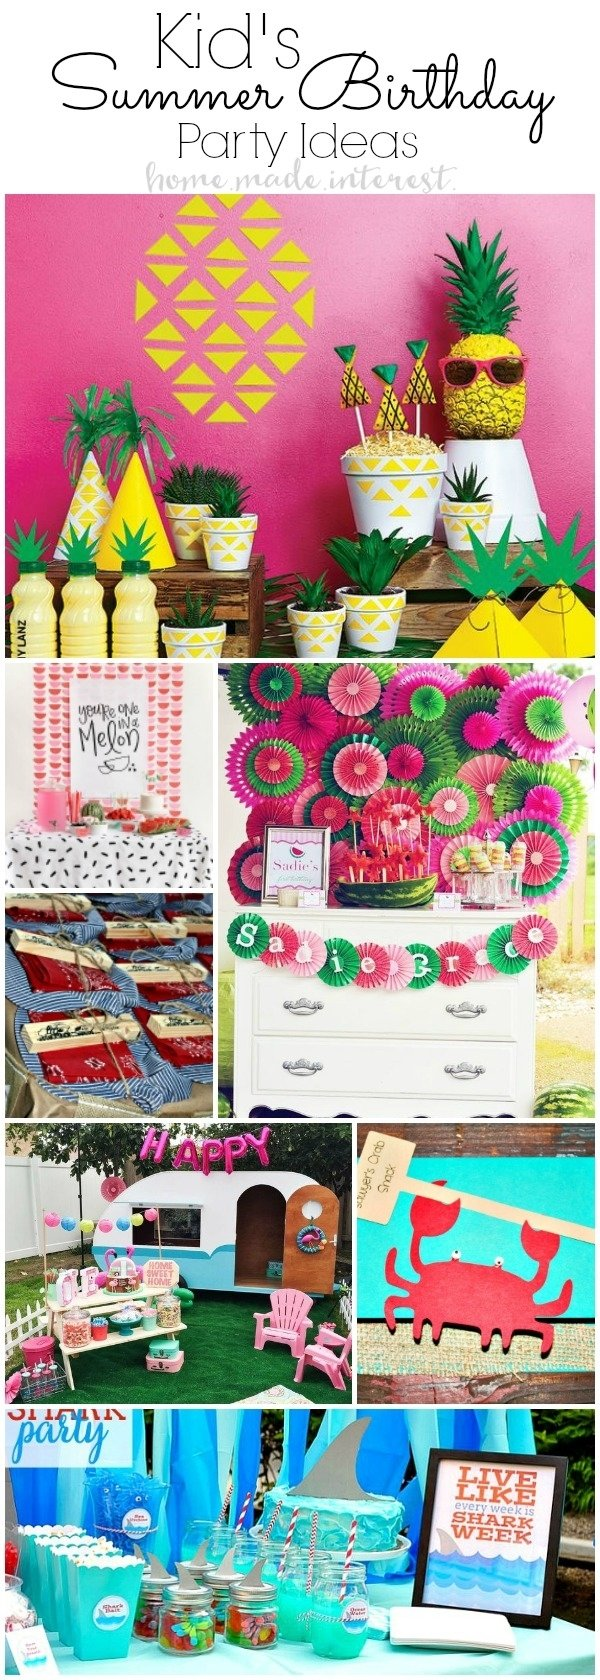 10 Lovable Summer Party Ideas For Adults summer birthday party ideas for kids home made interest 1 2020